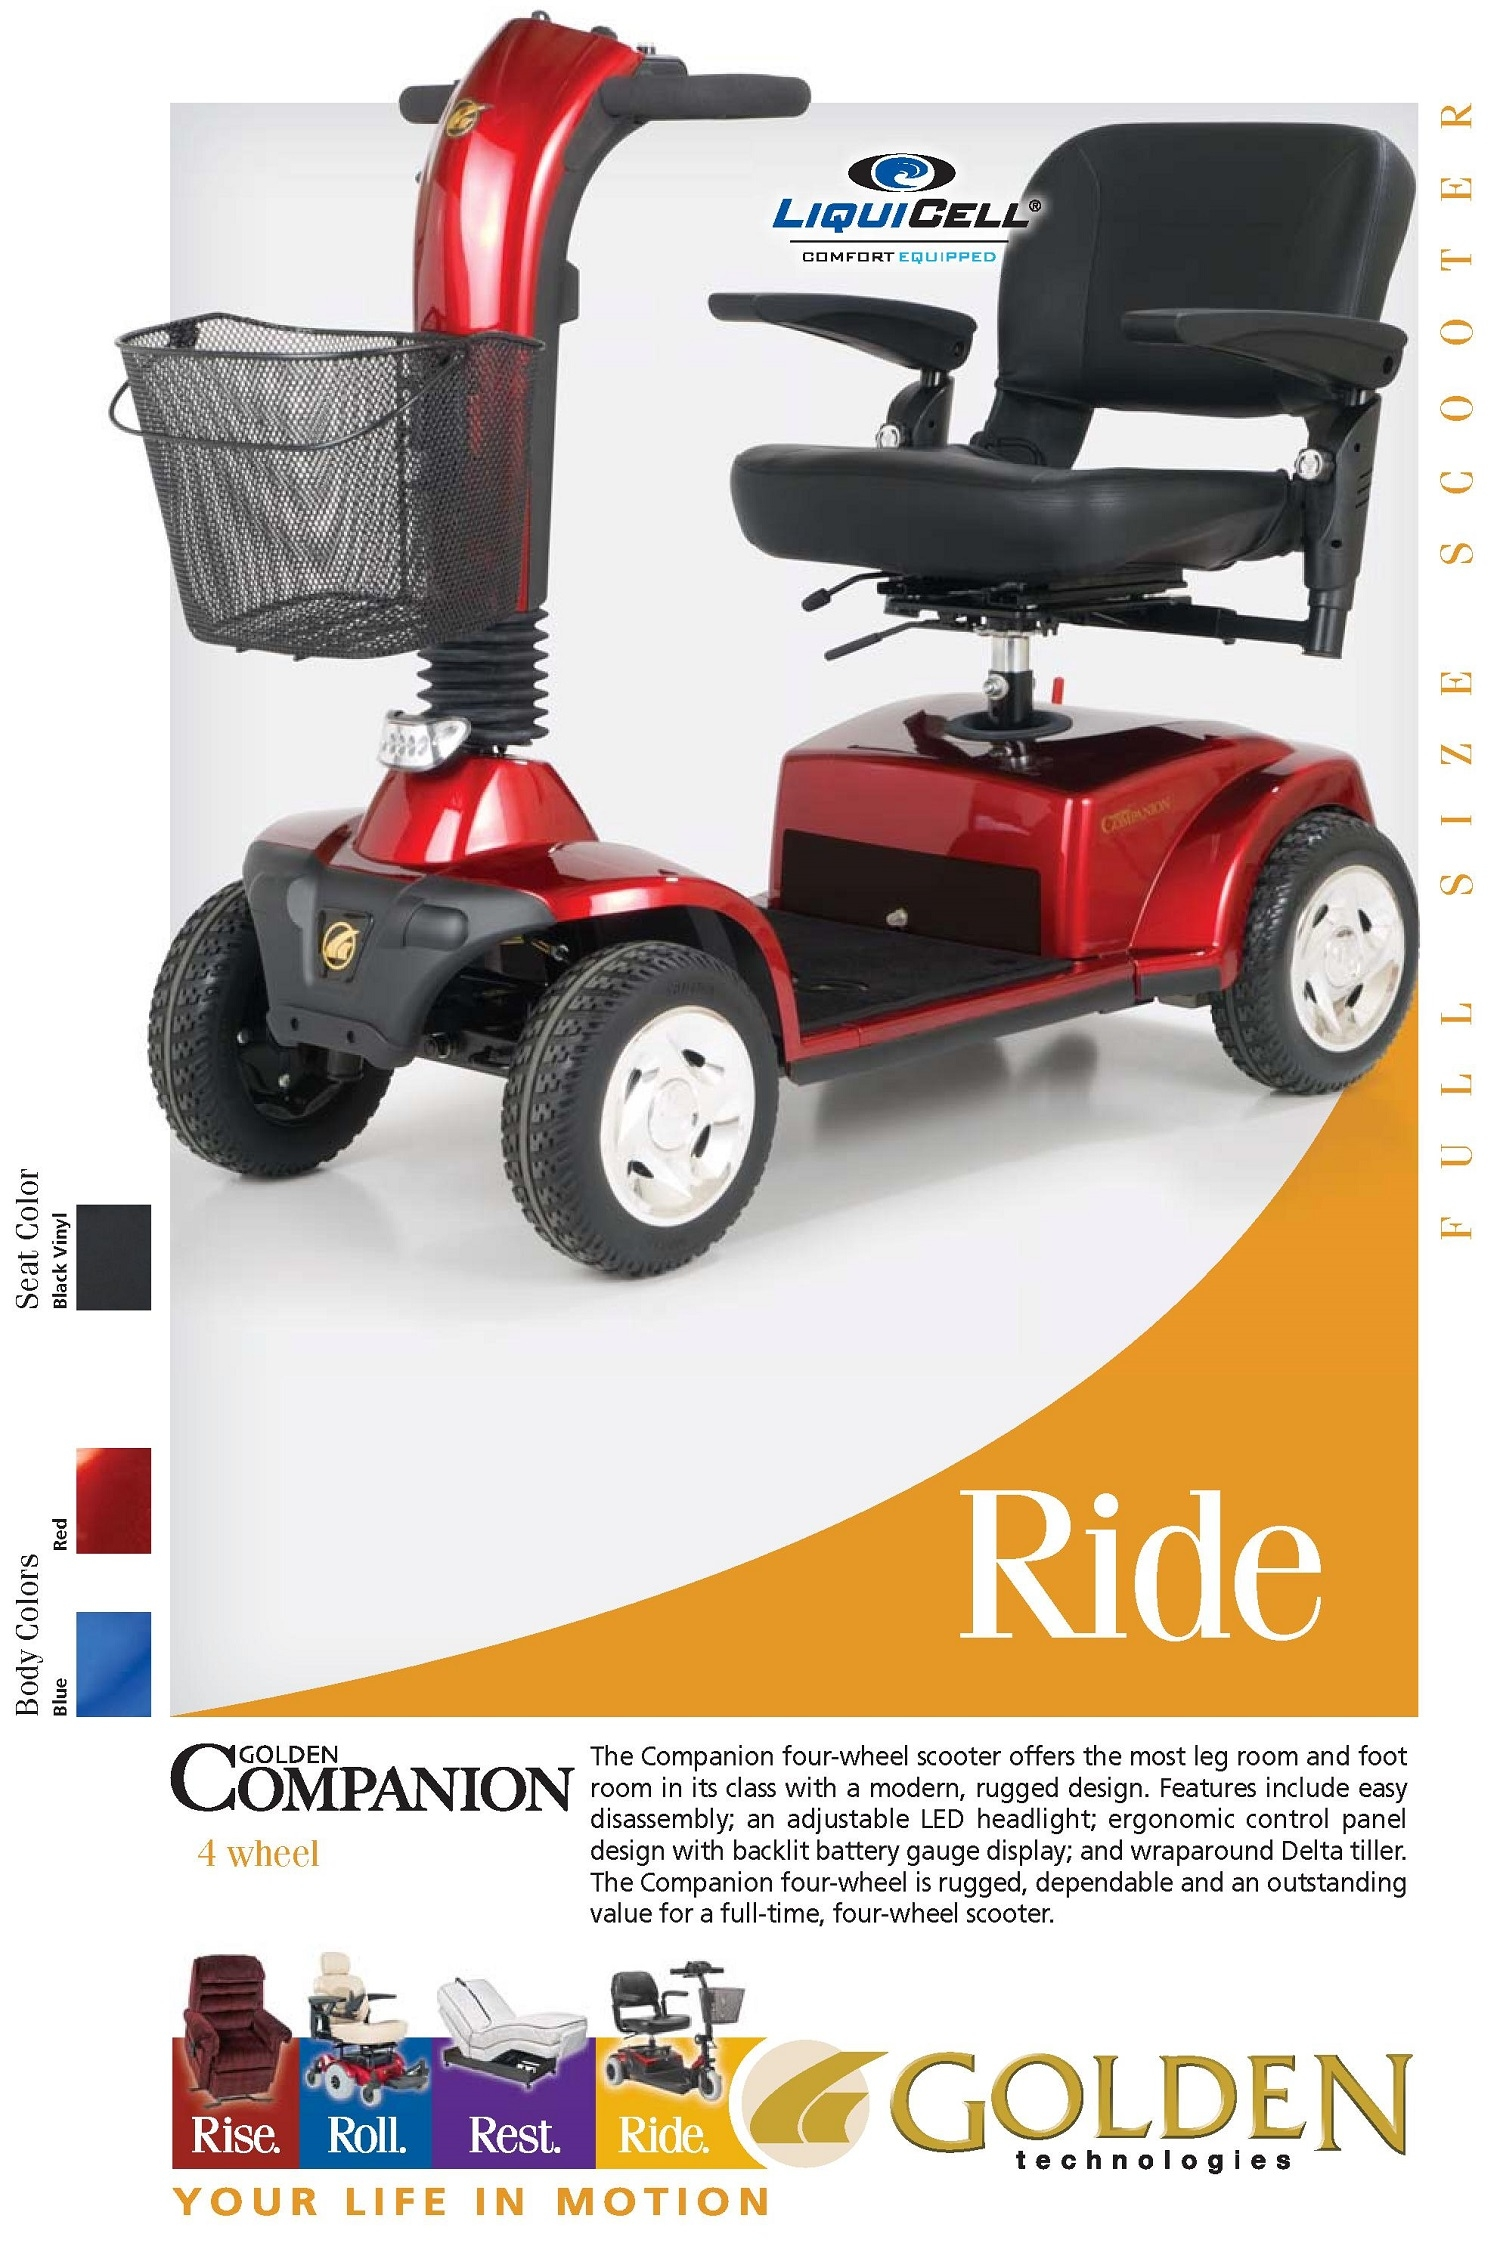 Companion Full Size GC440 Mobility Scooter 4-Wheel Golden Tech